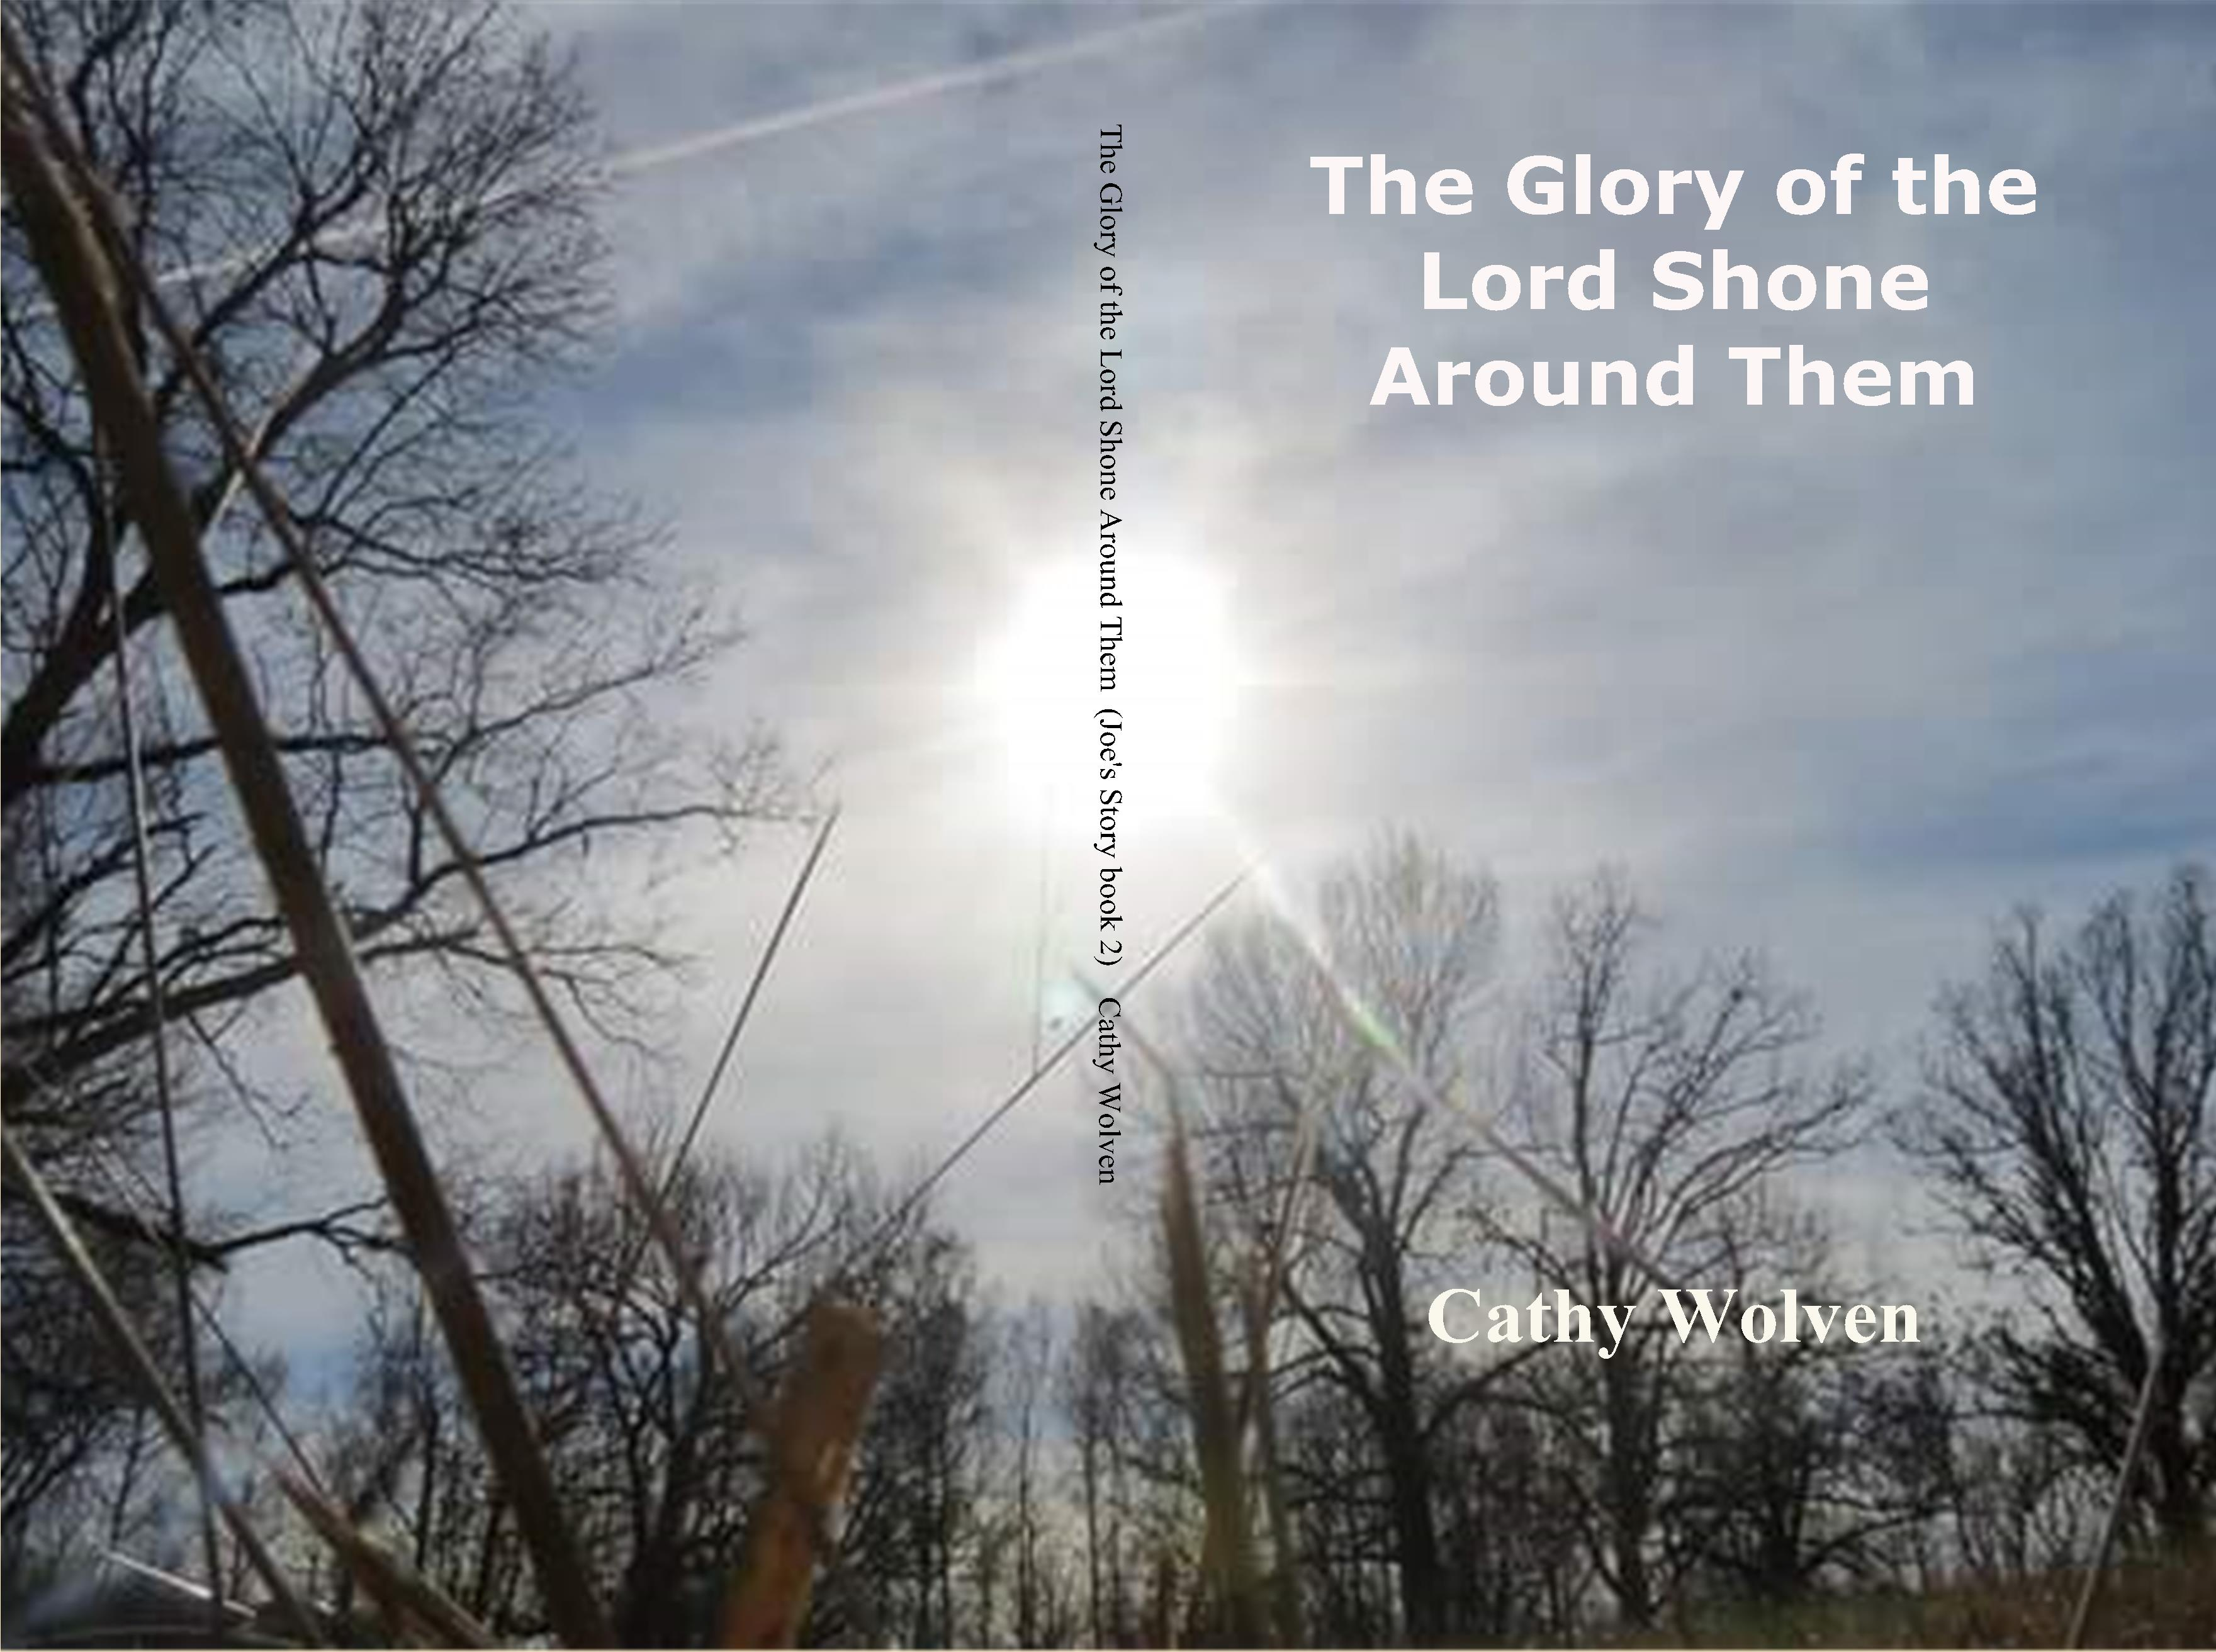 The Glory of the Lord Shone Around Them cover image